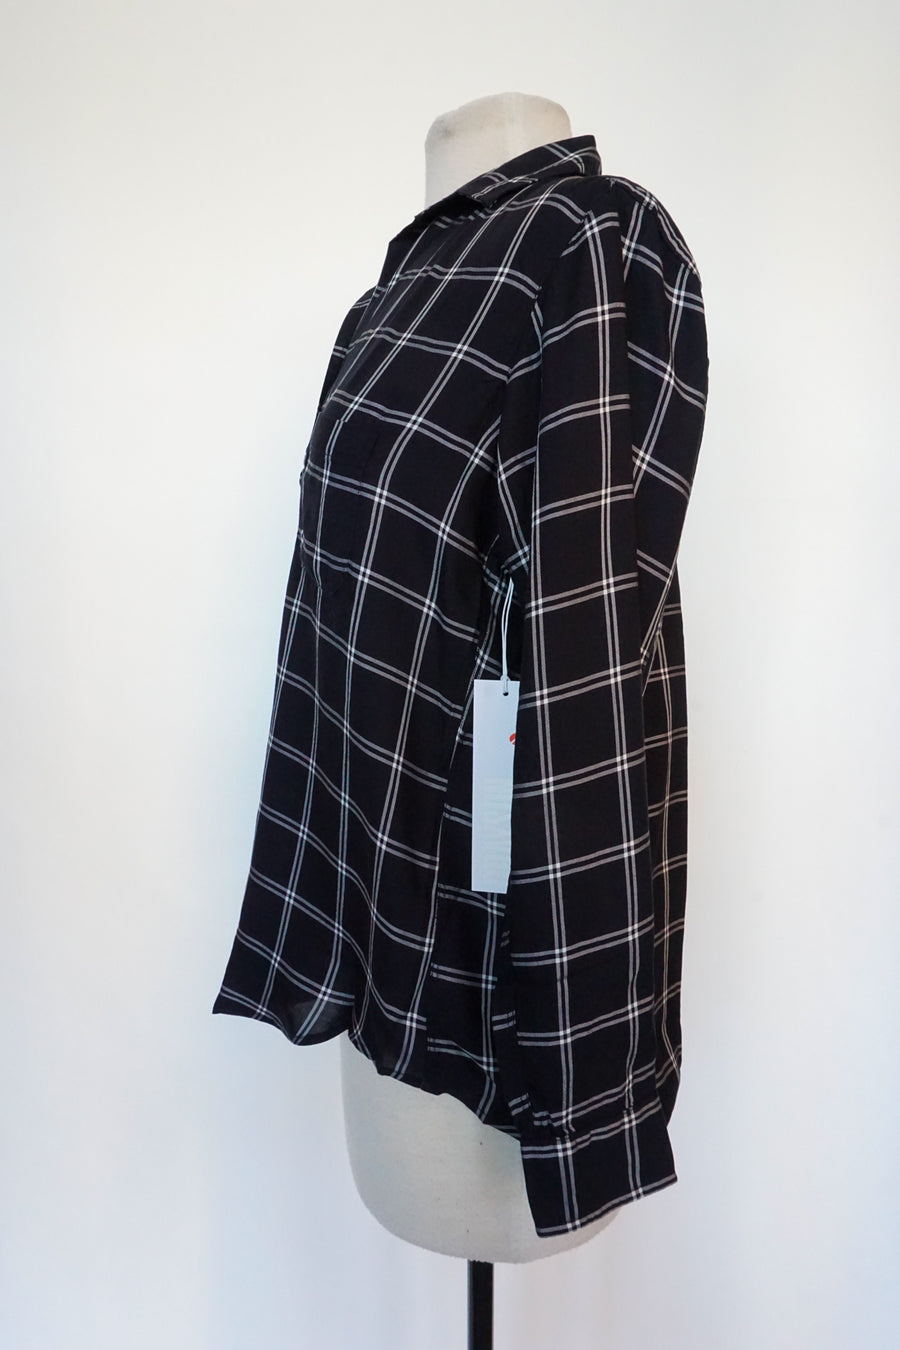 Grayson - Black and White Plaid